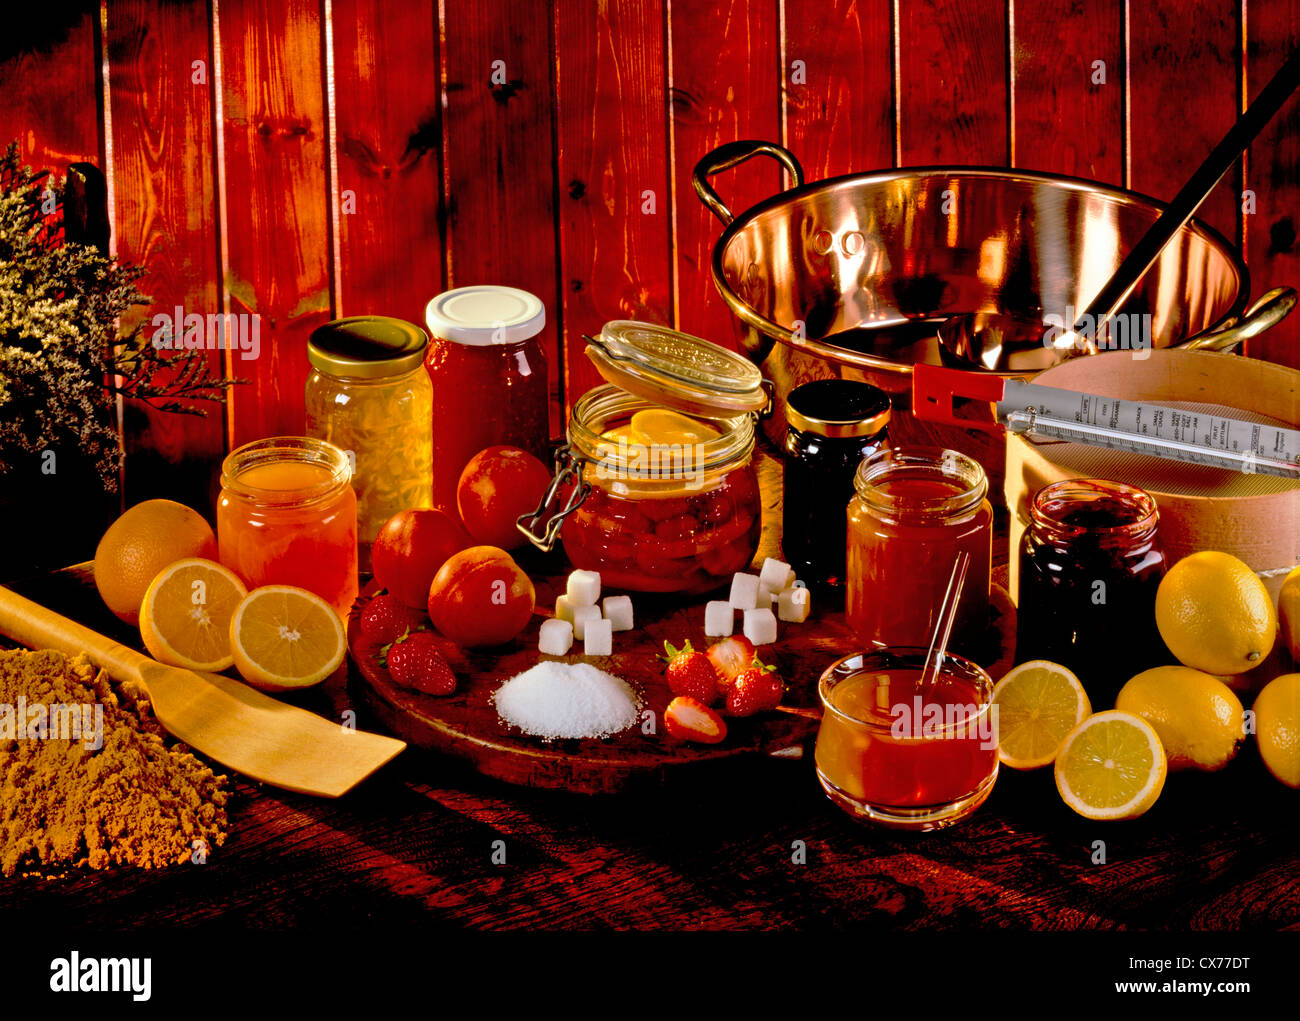 MAKING FRUIT PRESERVES AND CANNING - Stock Image